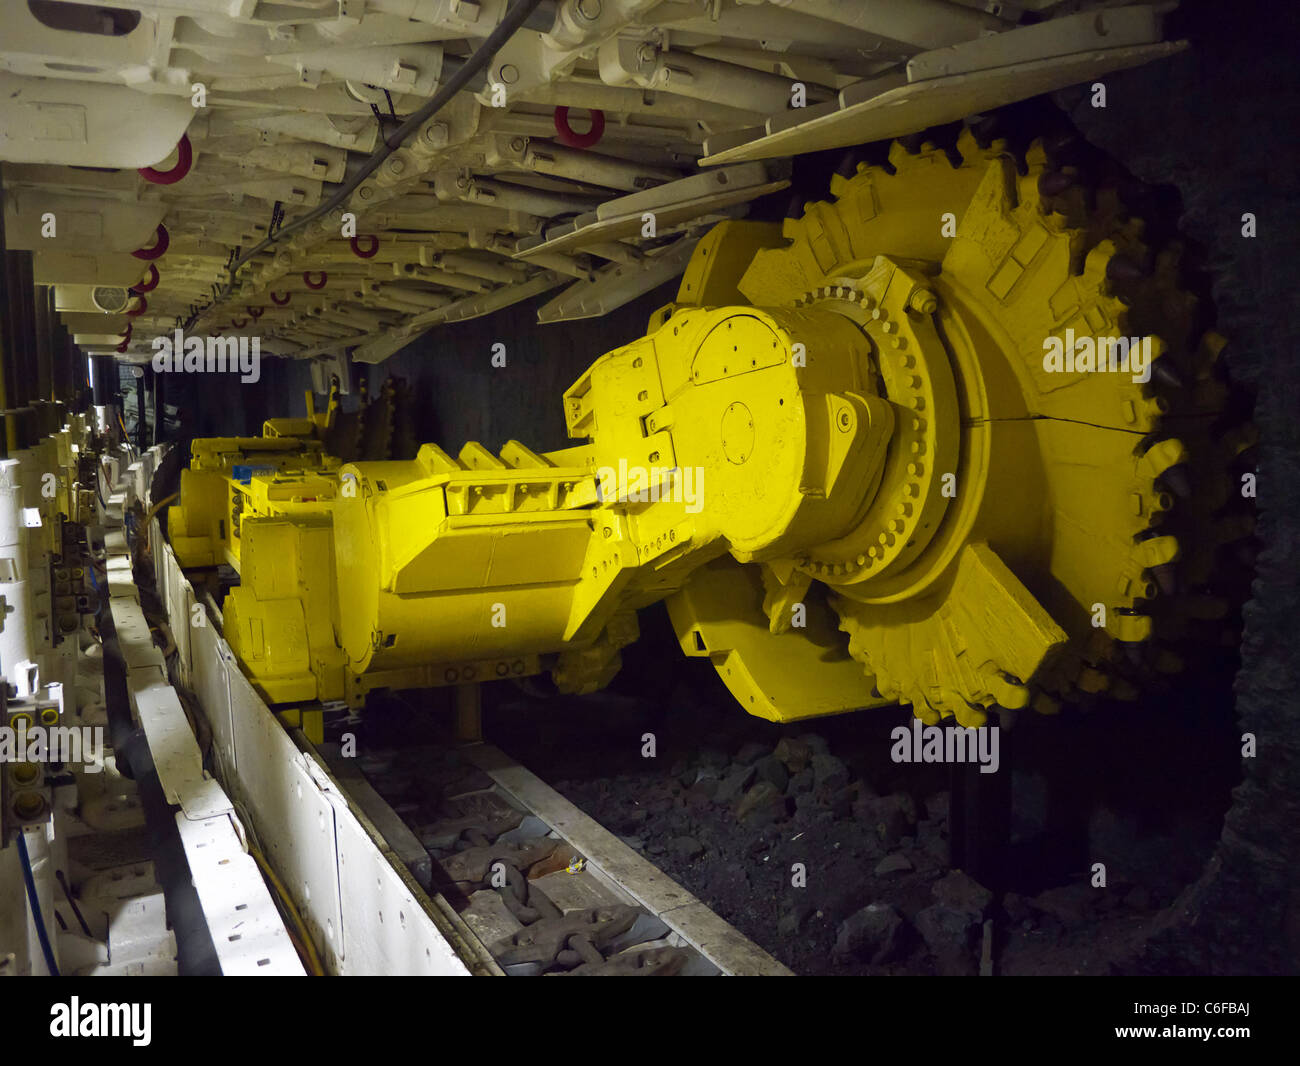 Coal cutting machine inside mine at the Deutsches Bergbau-Museum or German Mining Museum in Bochum Germany - Stock Image